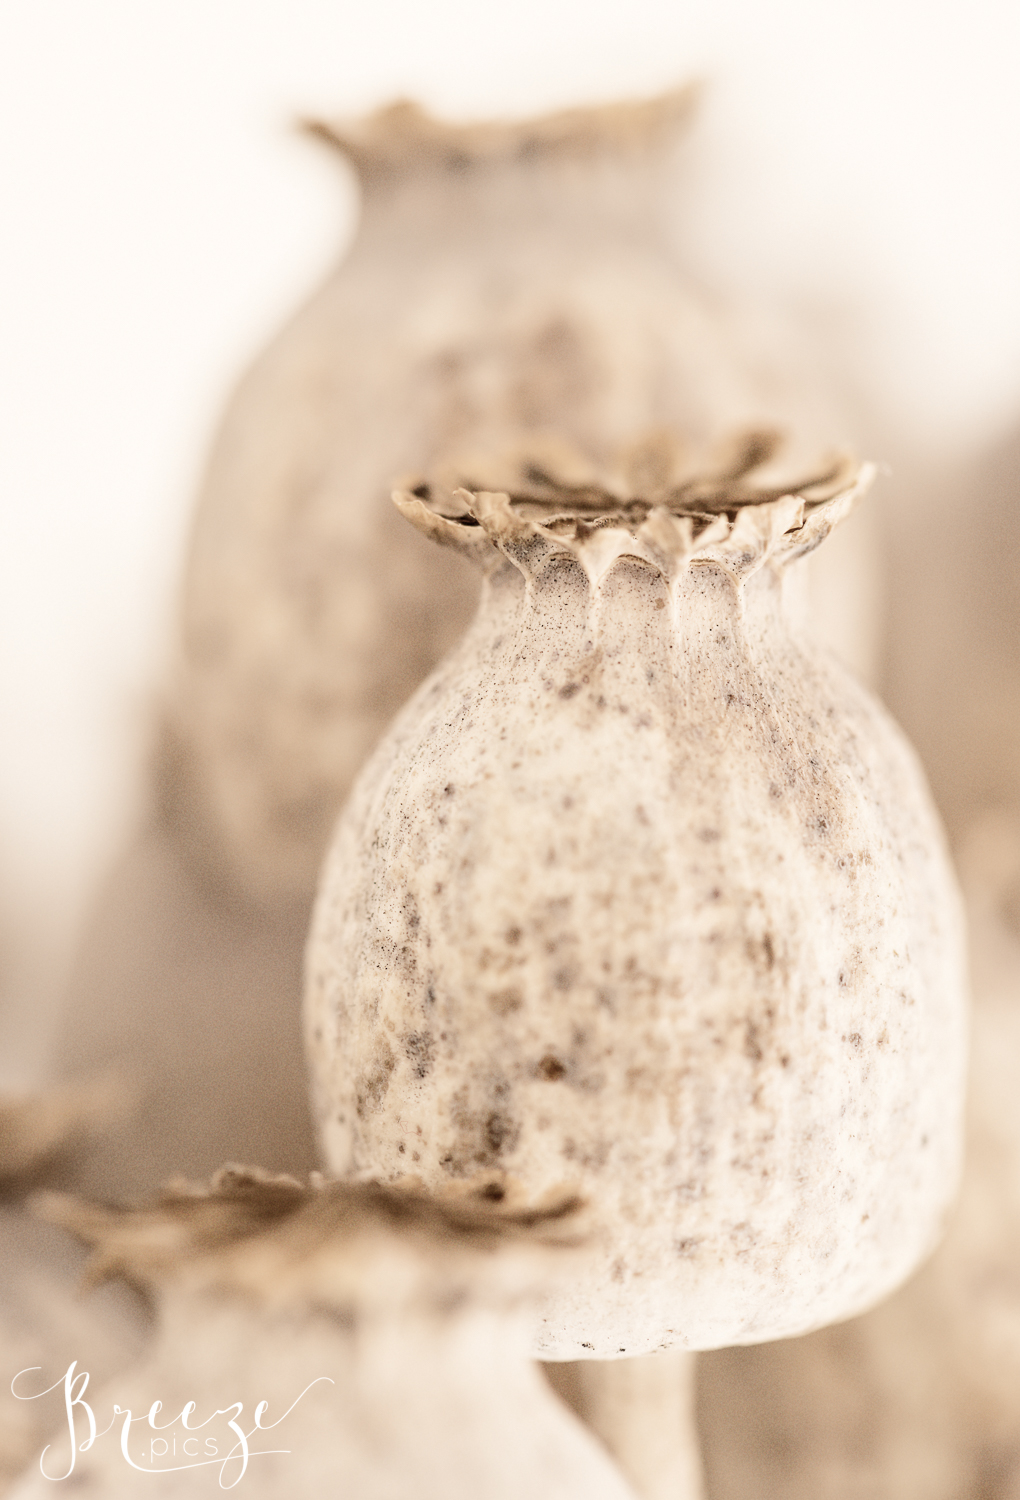 Macro_Poppy_Seedpod_Study3_Colour-2.jpg